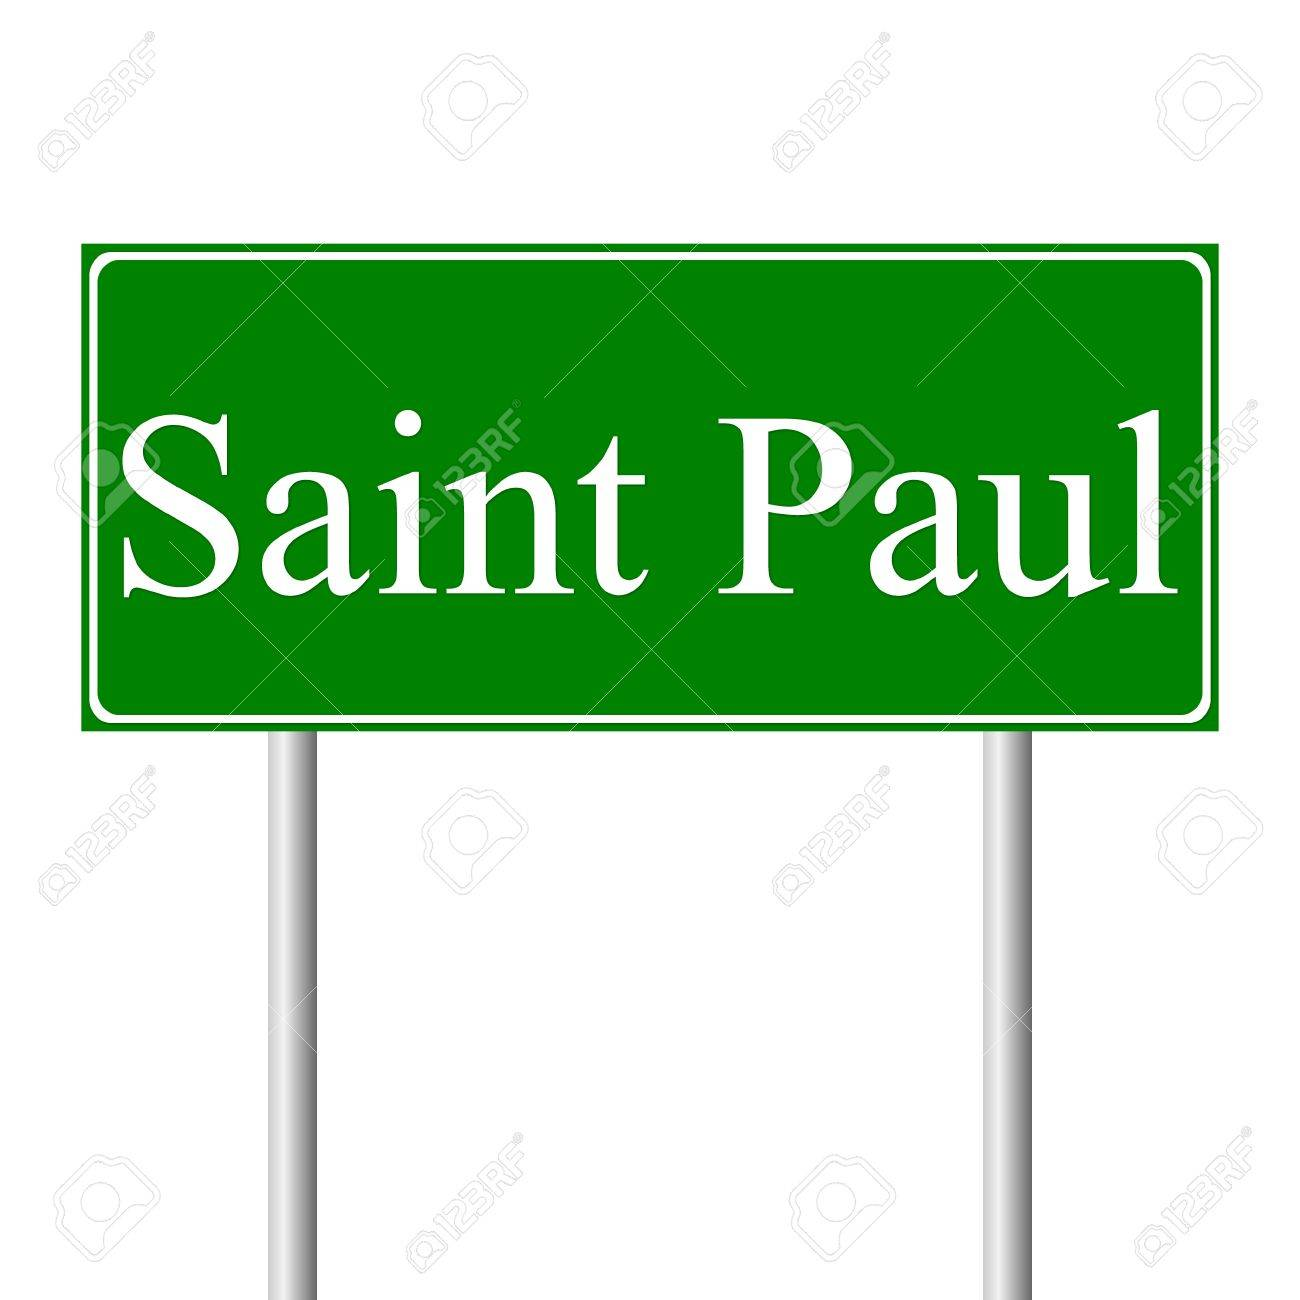 new products reliable quality sells Saint Paul green road sign isolated on white background